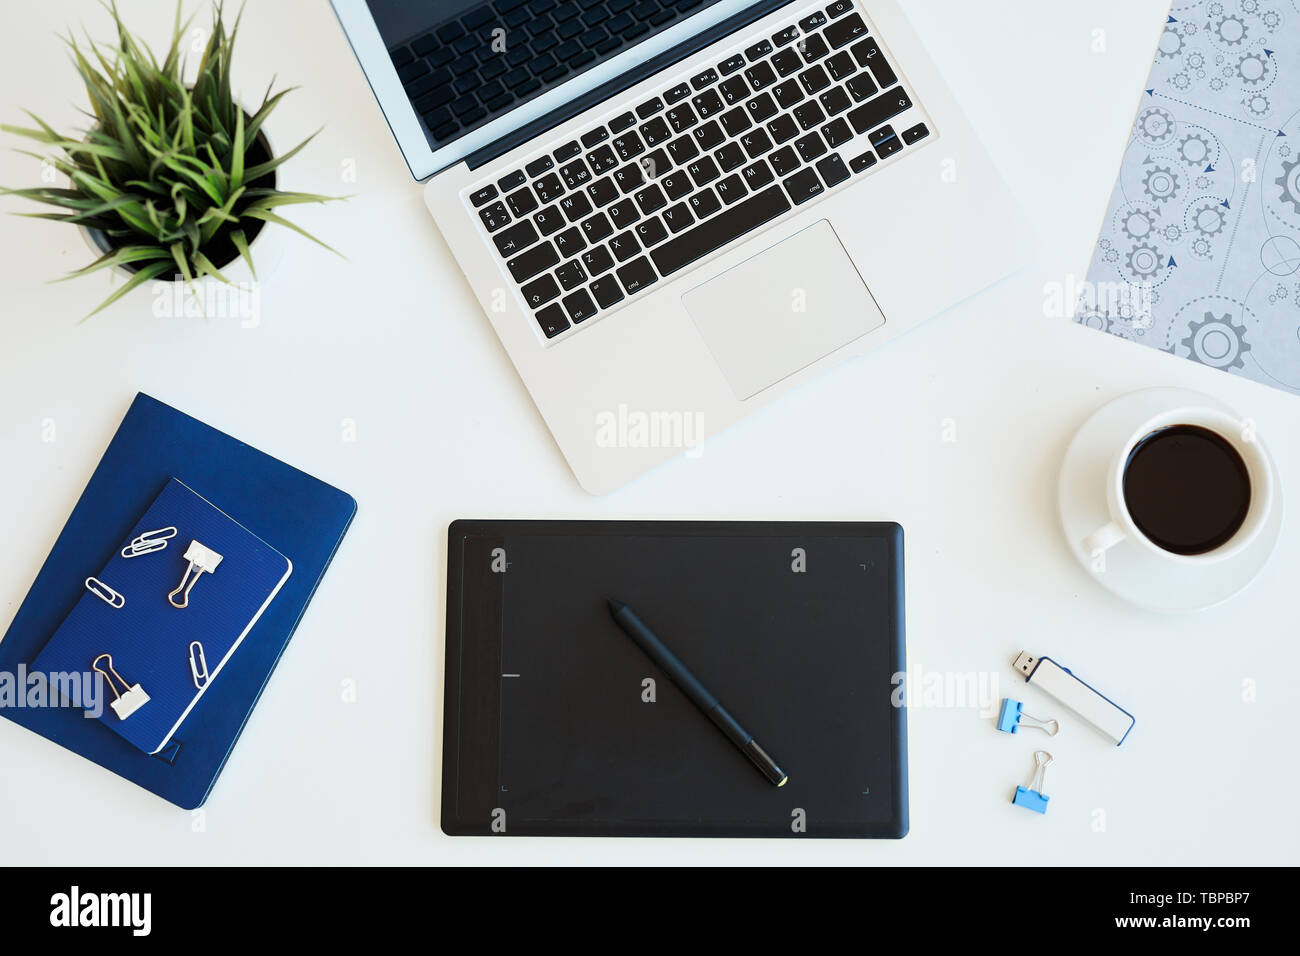 High angle view of digital graphic drawing tablet, open laptop, diaries and cup of coffee on desk - Stock Image